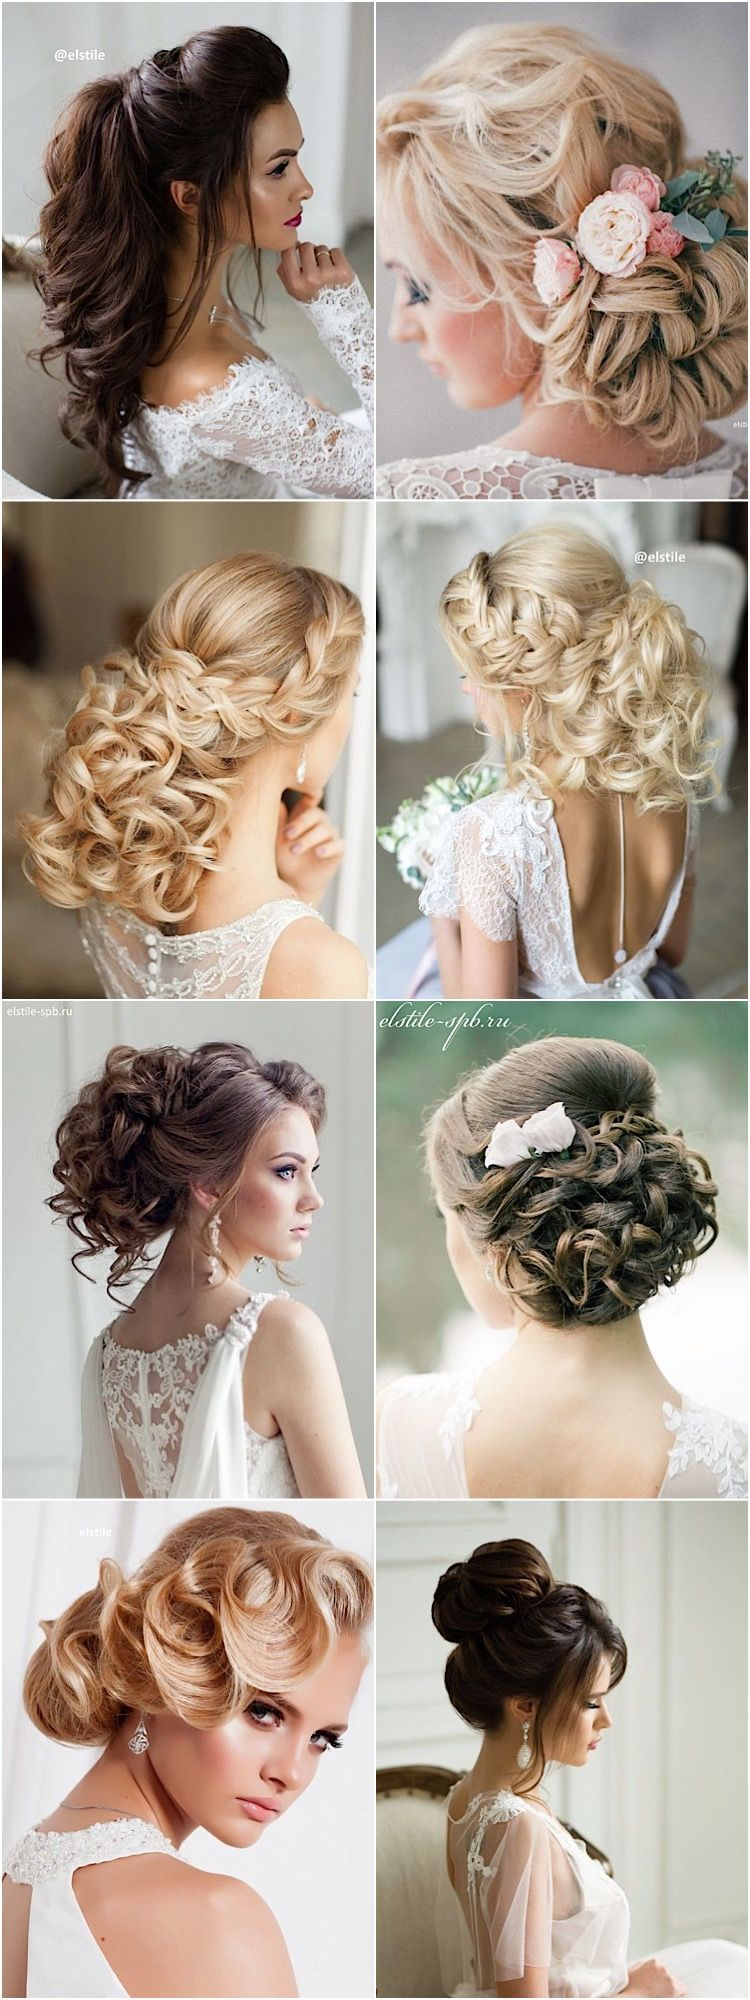 How Much Do Wedding Day Hair and Makeup Cost? Wedding